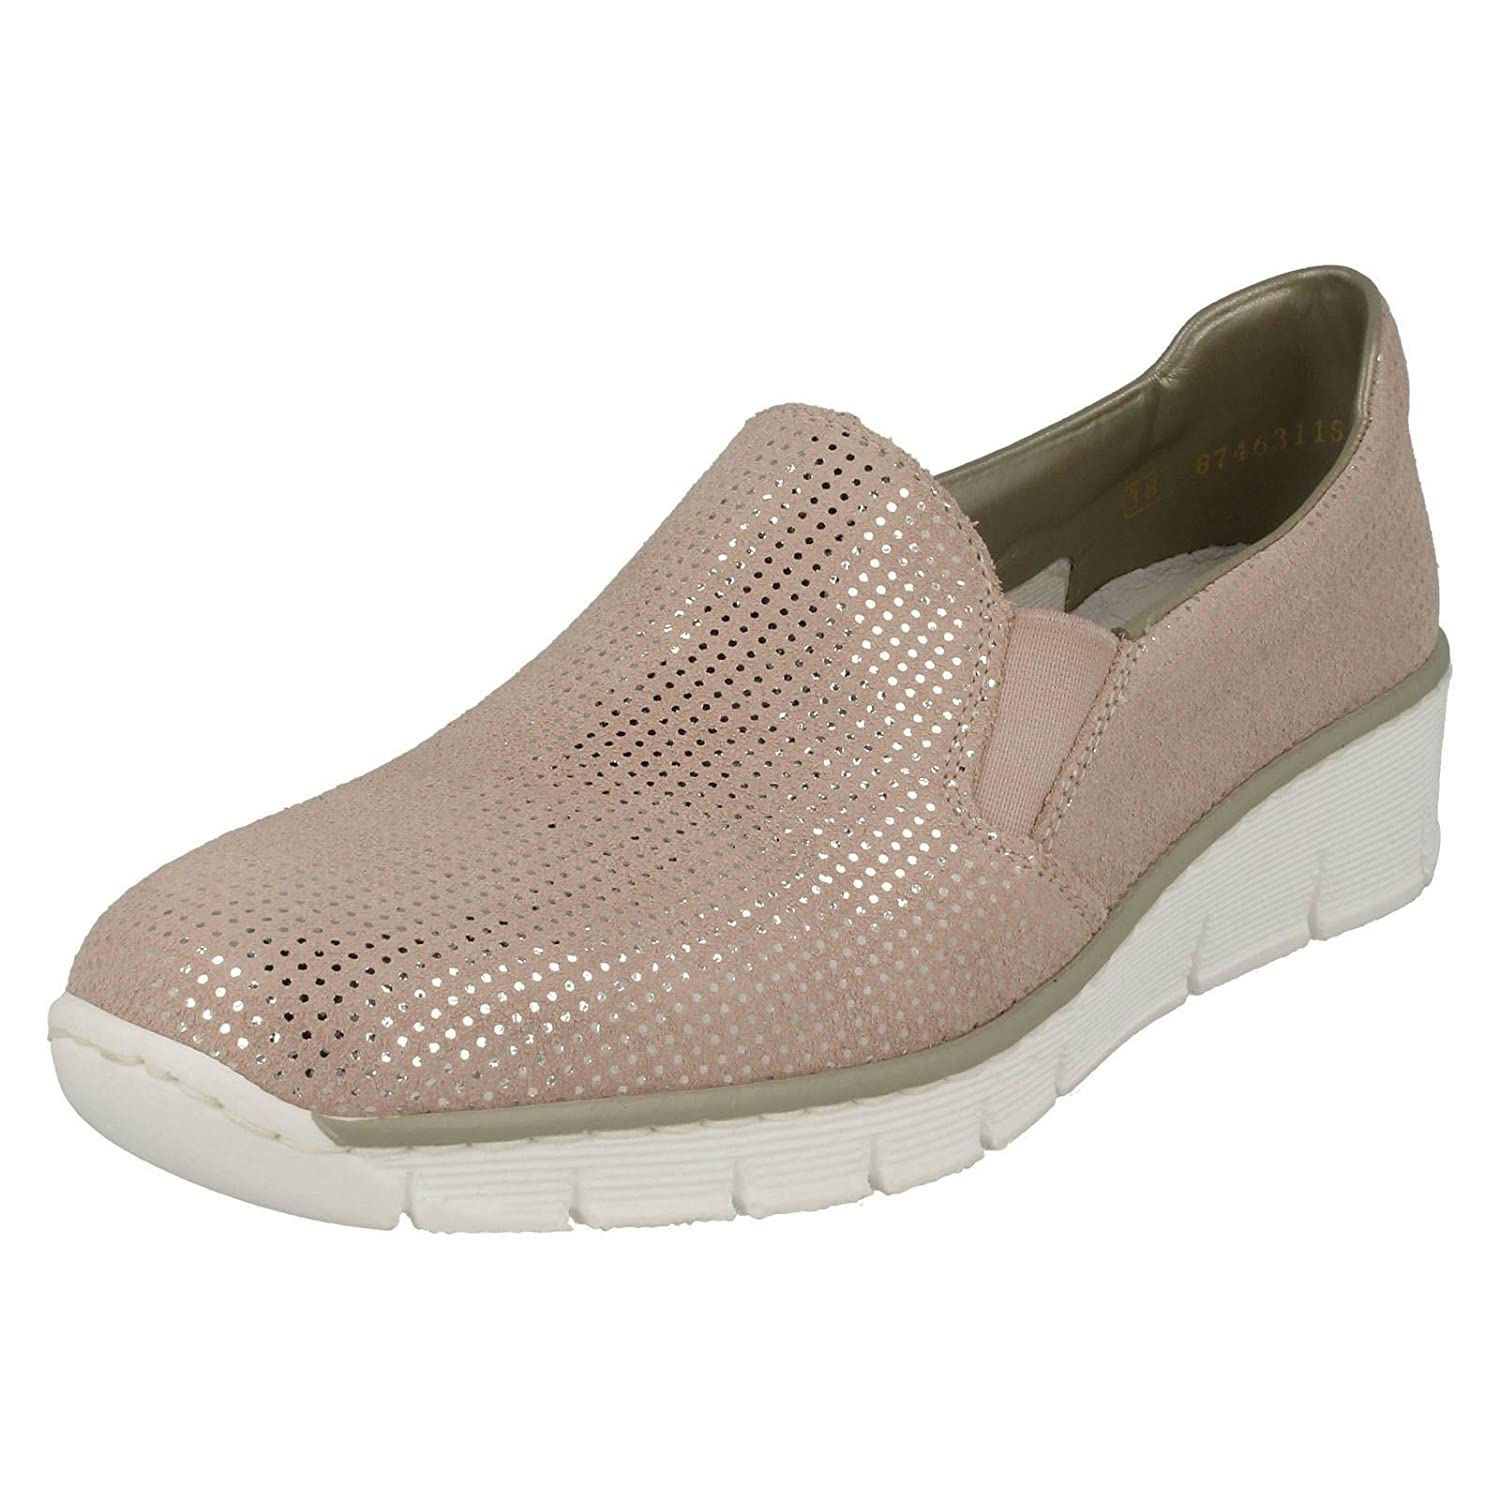 Rieker Melgar Womens Casual Shoes B078Y6NJ9X 41 M EU|32 Rose